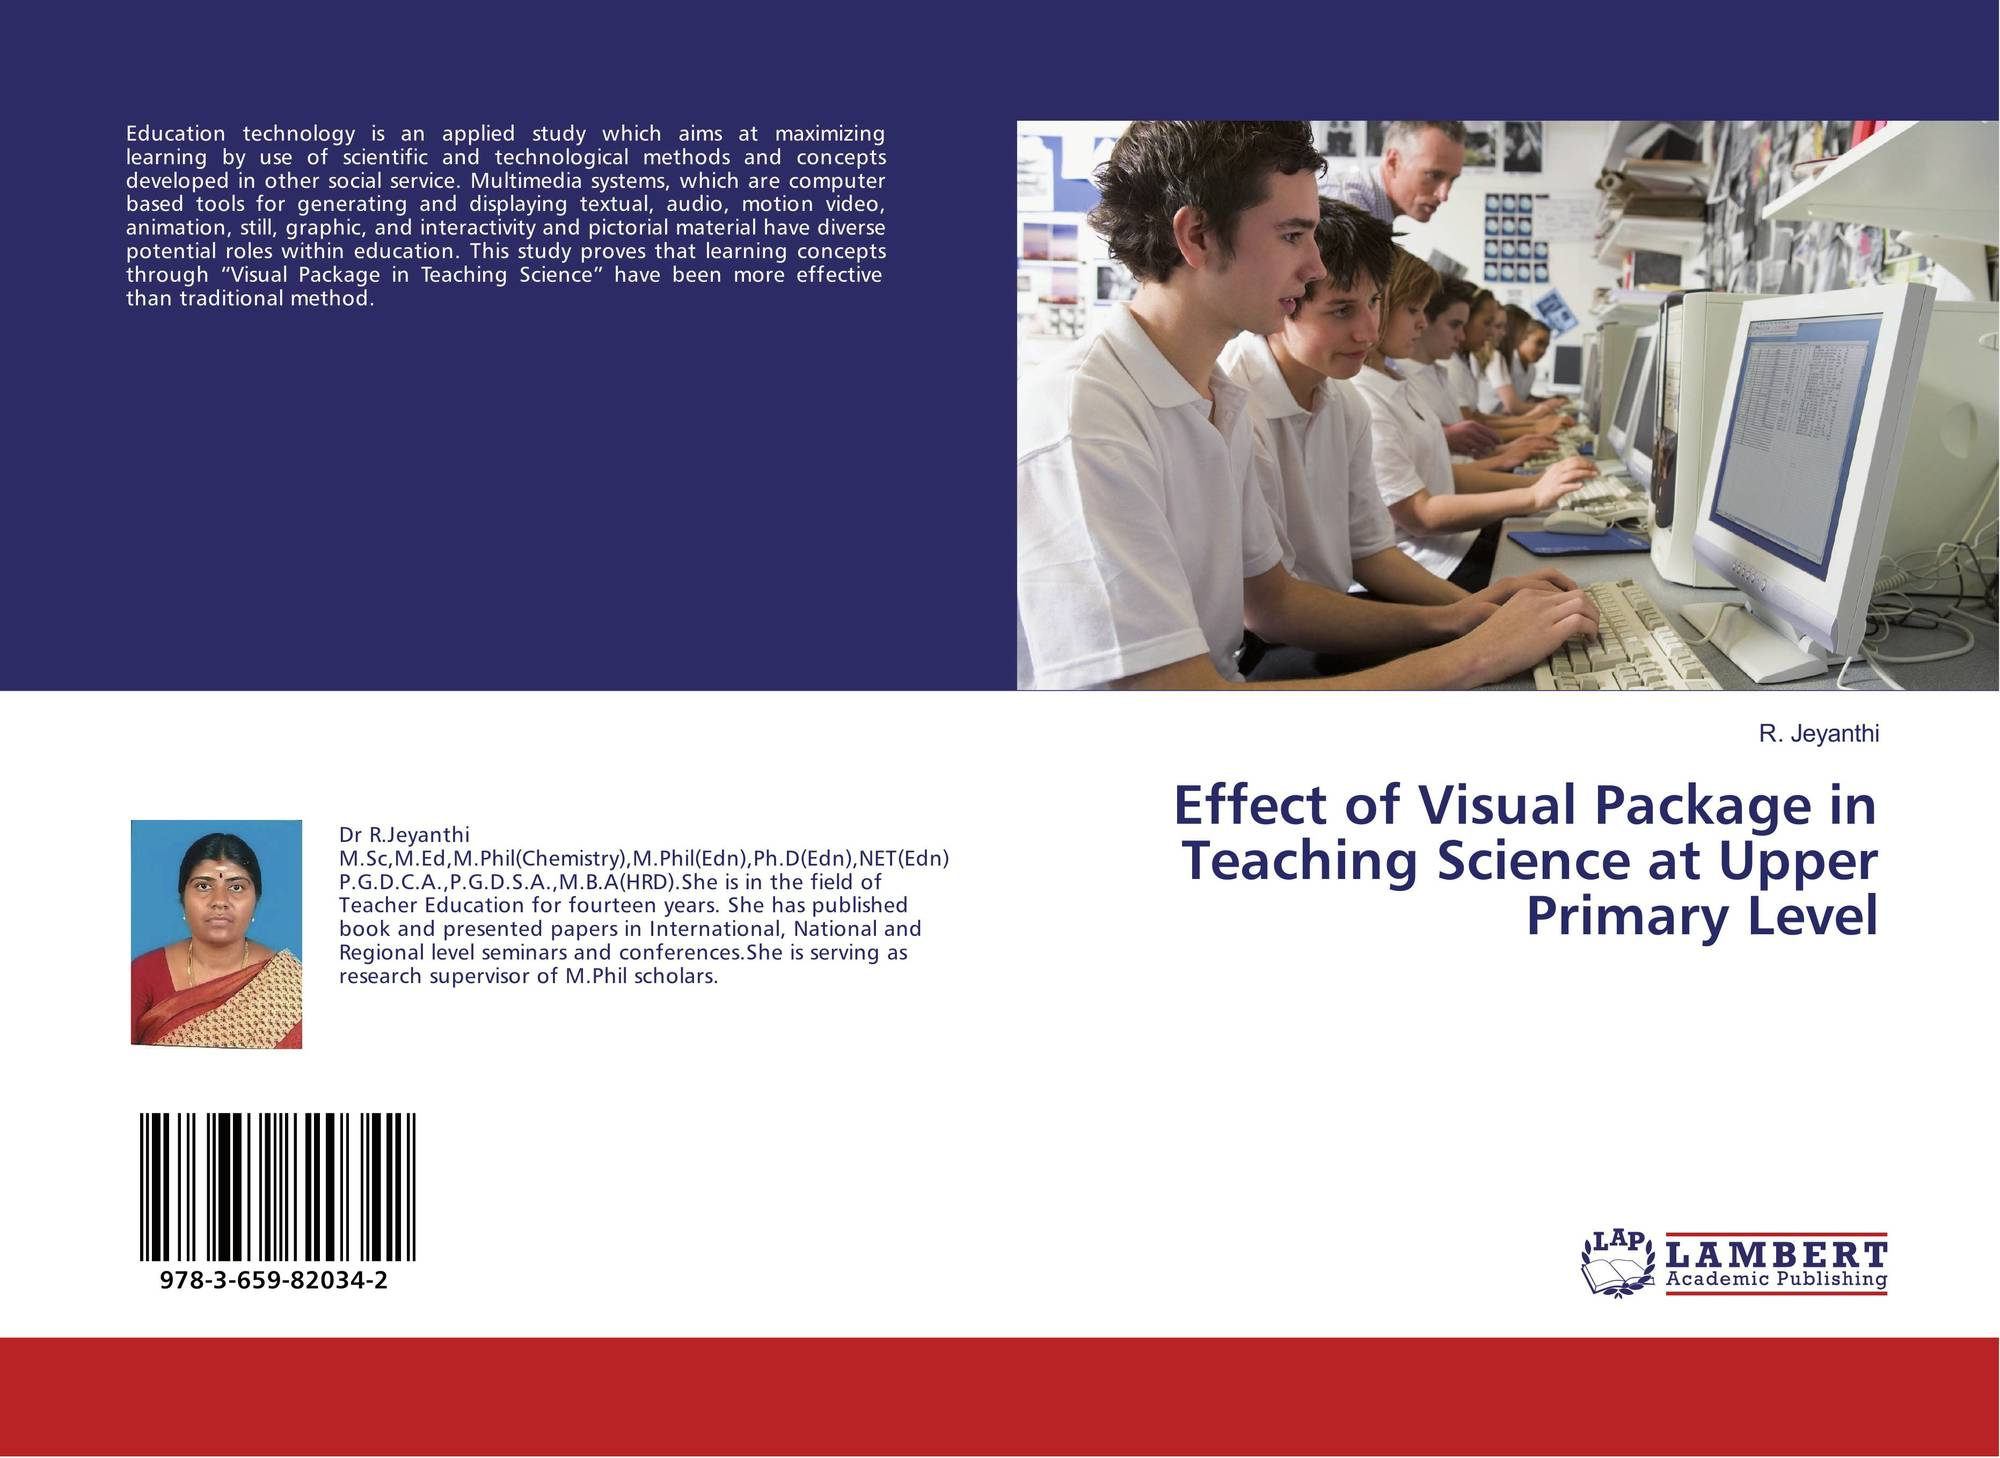 Effect of Visual Package in Teaching Science at Upper Primary Level